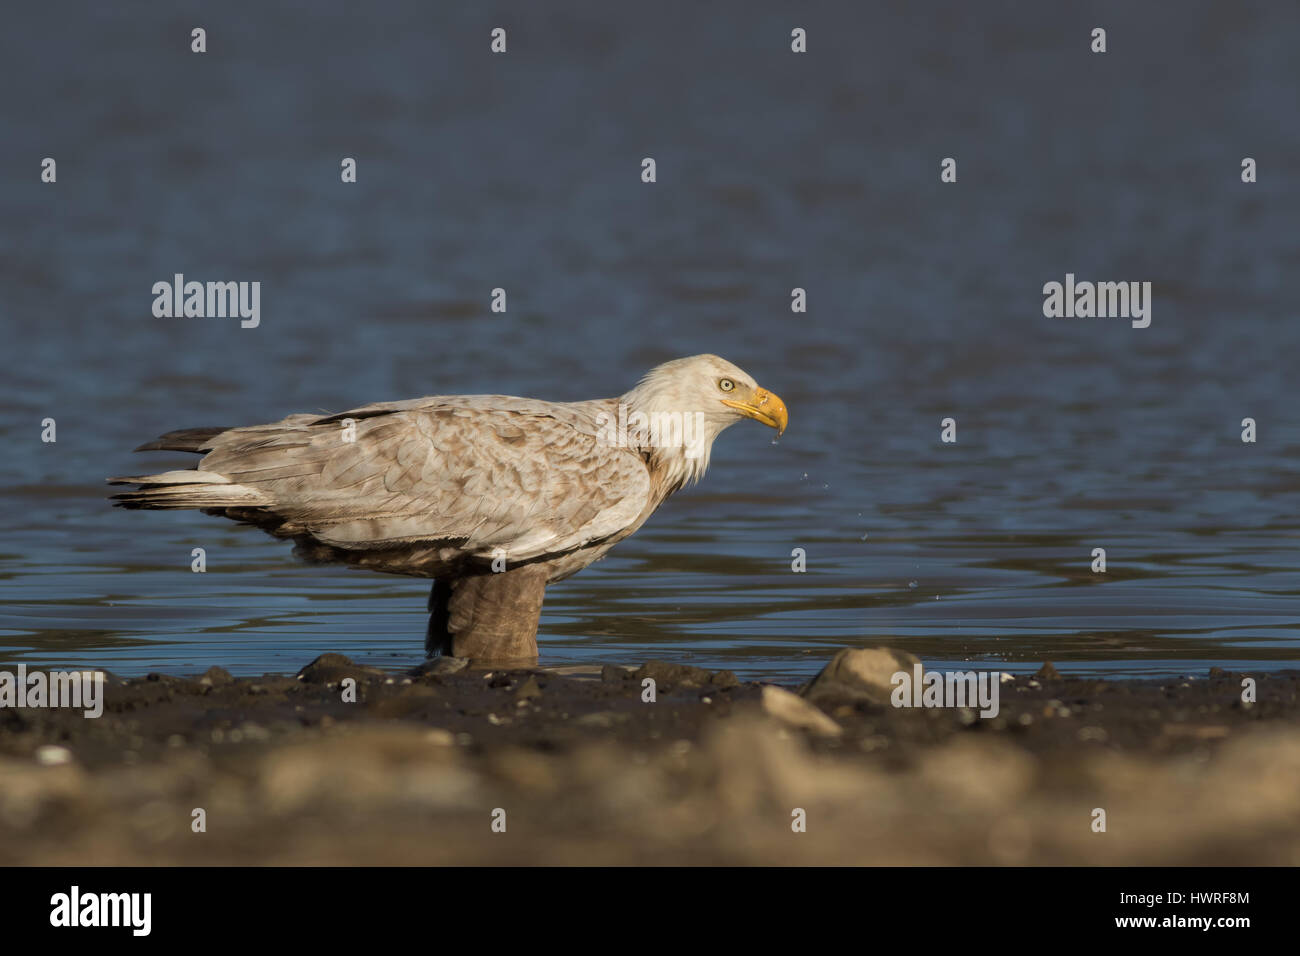 Only 1 in every 1000-2000 Bald Eagles is Leucistic (pigment lacking). This incredibly rare bird takes a brief drink - Stock Image